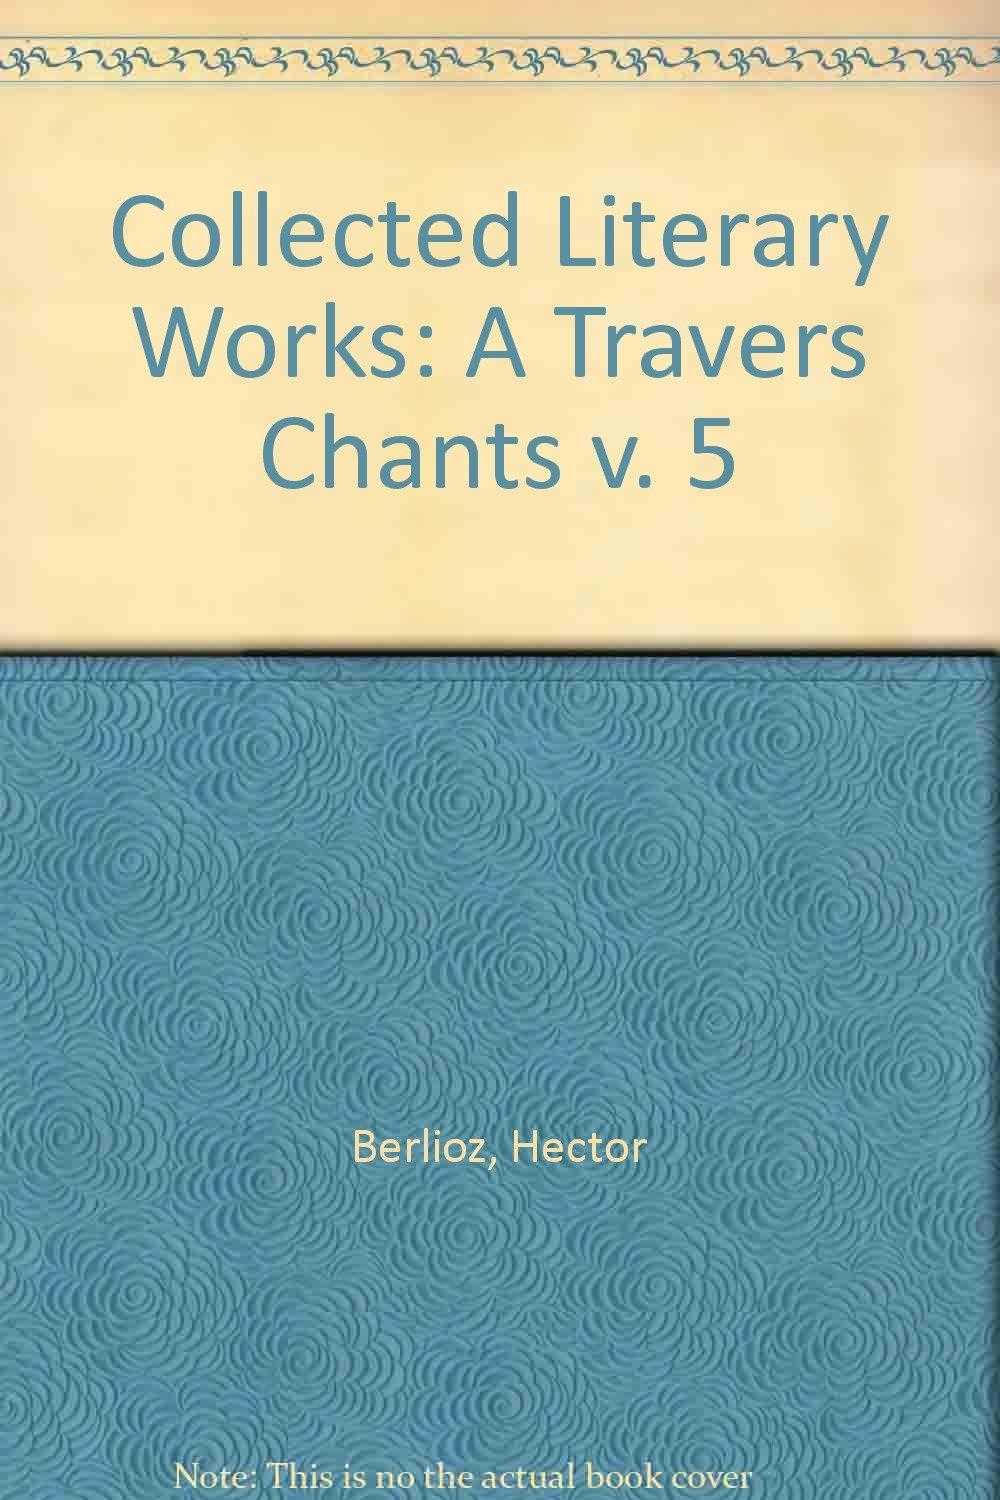 Collected Literary Works: A Travers Chants v. 5, Berlioz, Hector